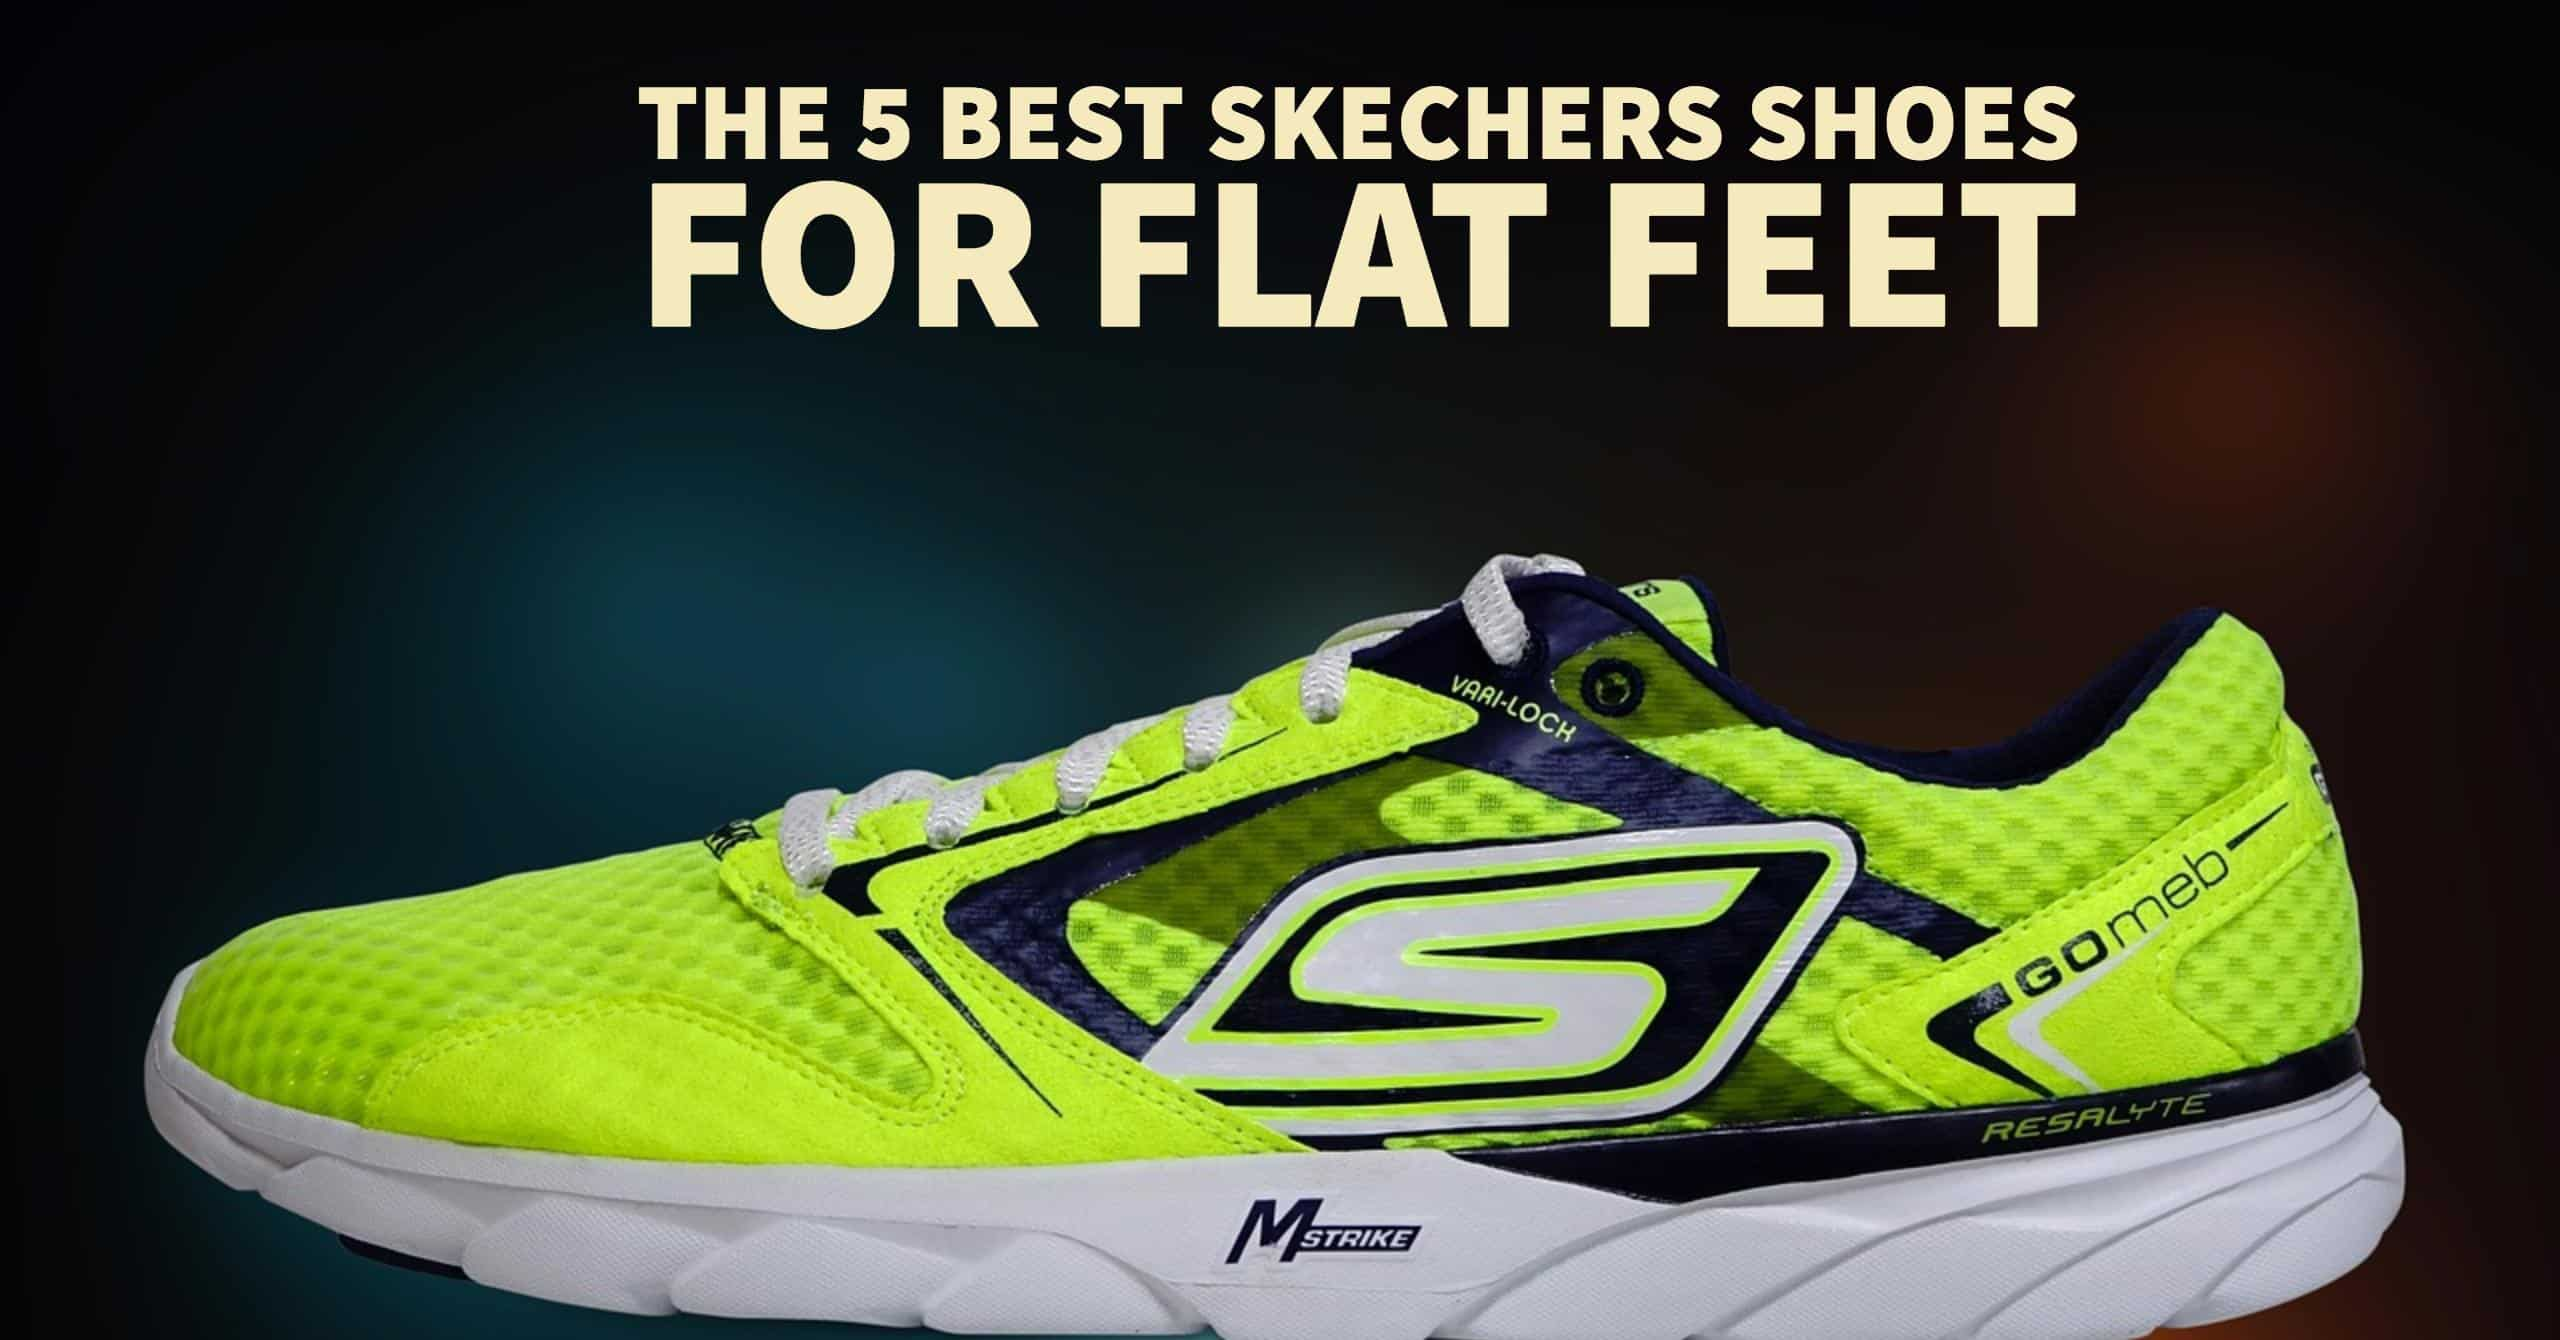 are skechers any good